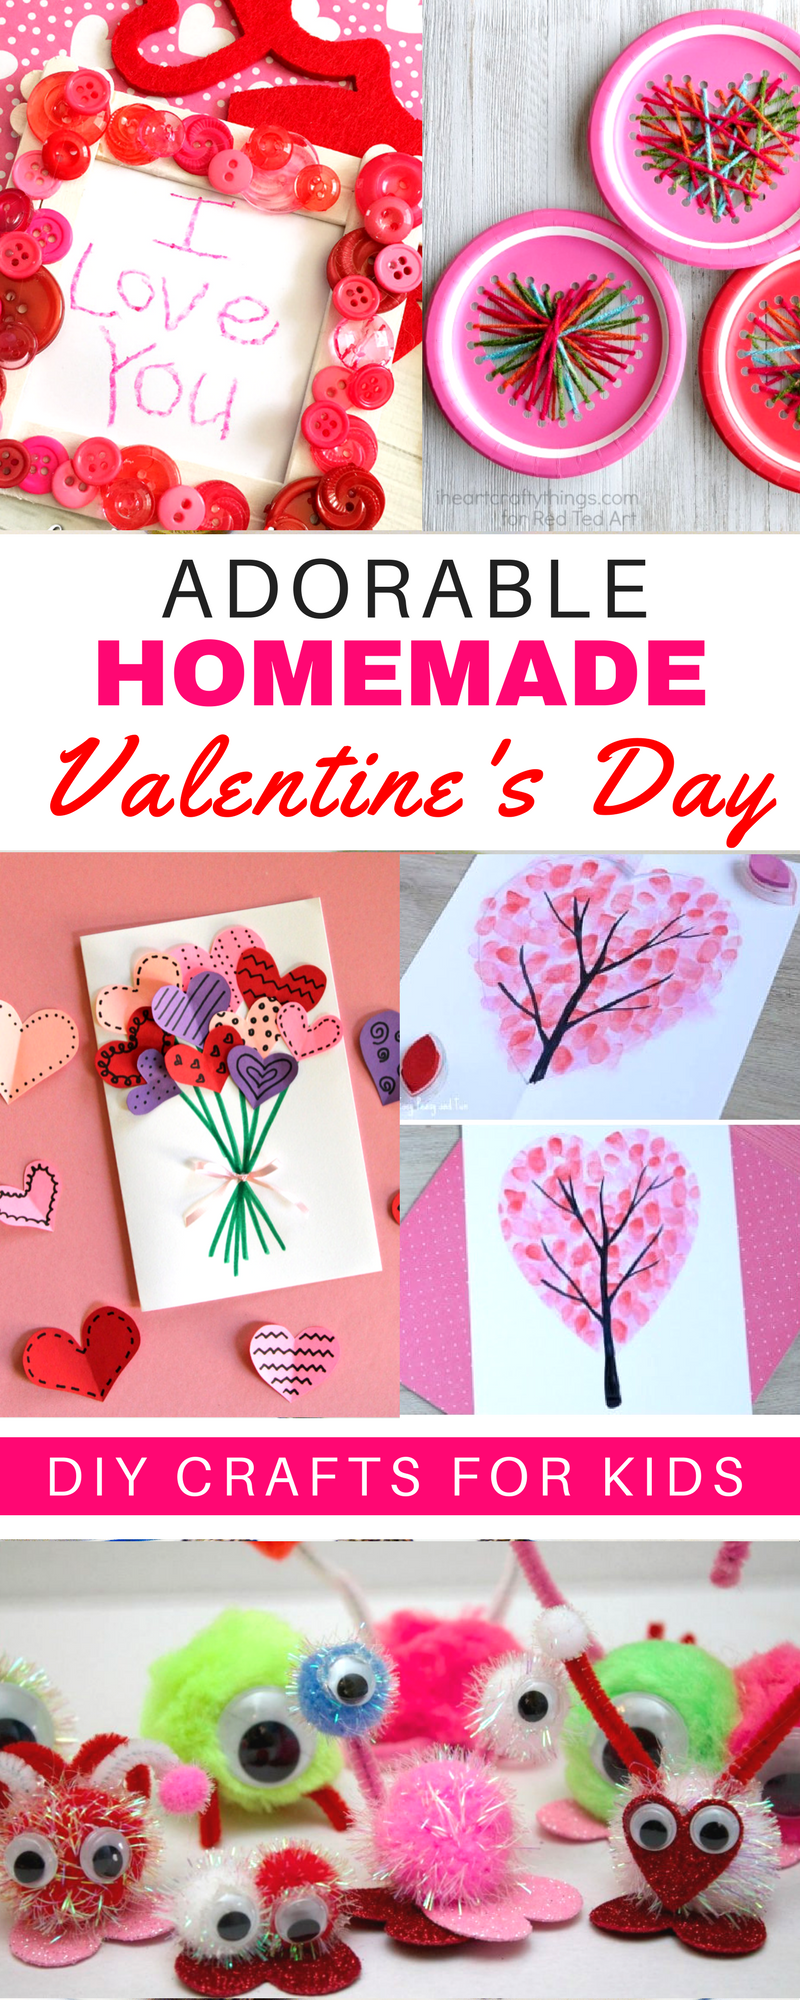 10 Adorable Homemade Valentine S Day Diy Ideas For Kids These Easy Heart Shaped Crafts Are Perfec Valentine S Day Diy Homemade Valentines Valentine Day Crafts